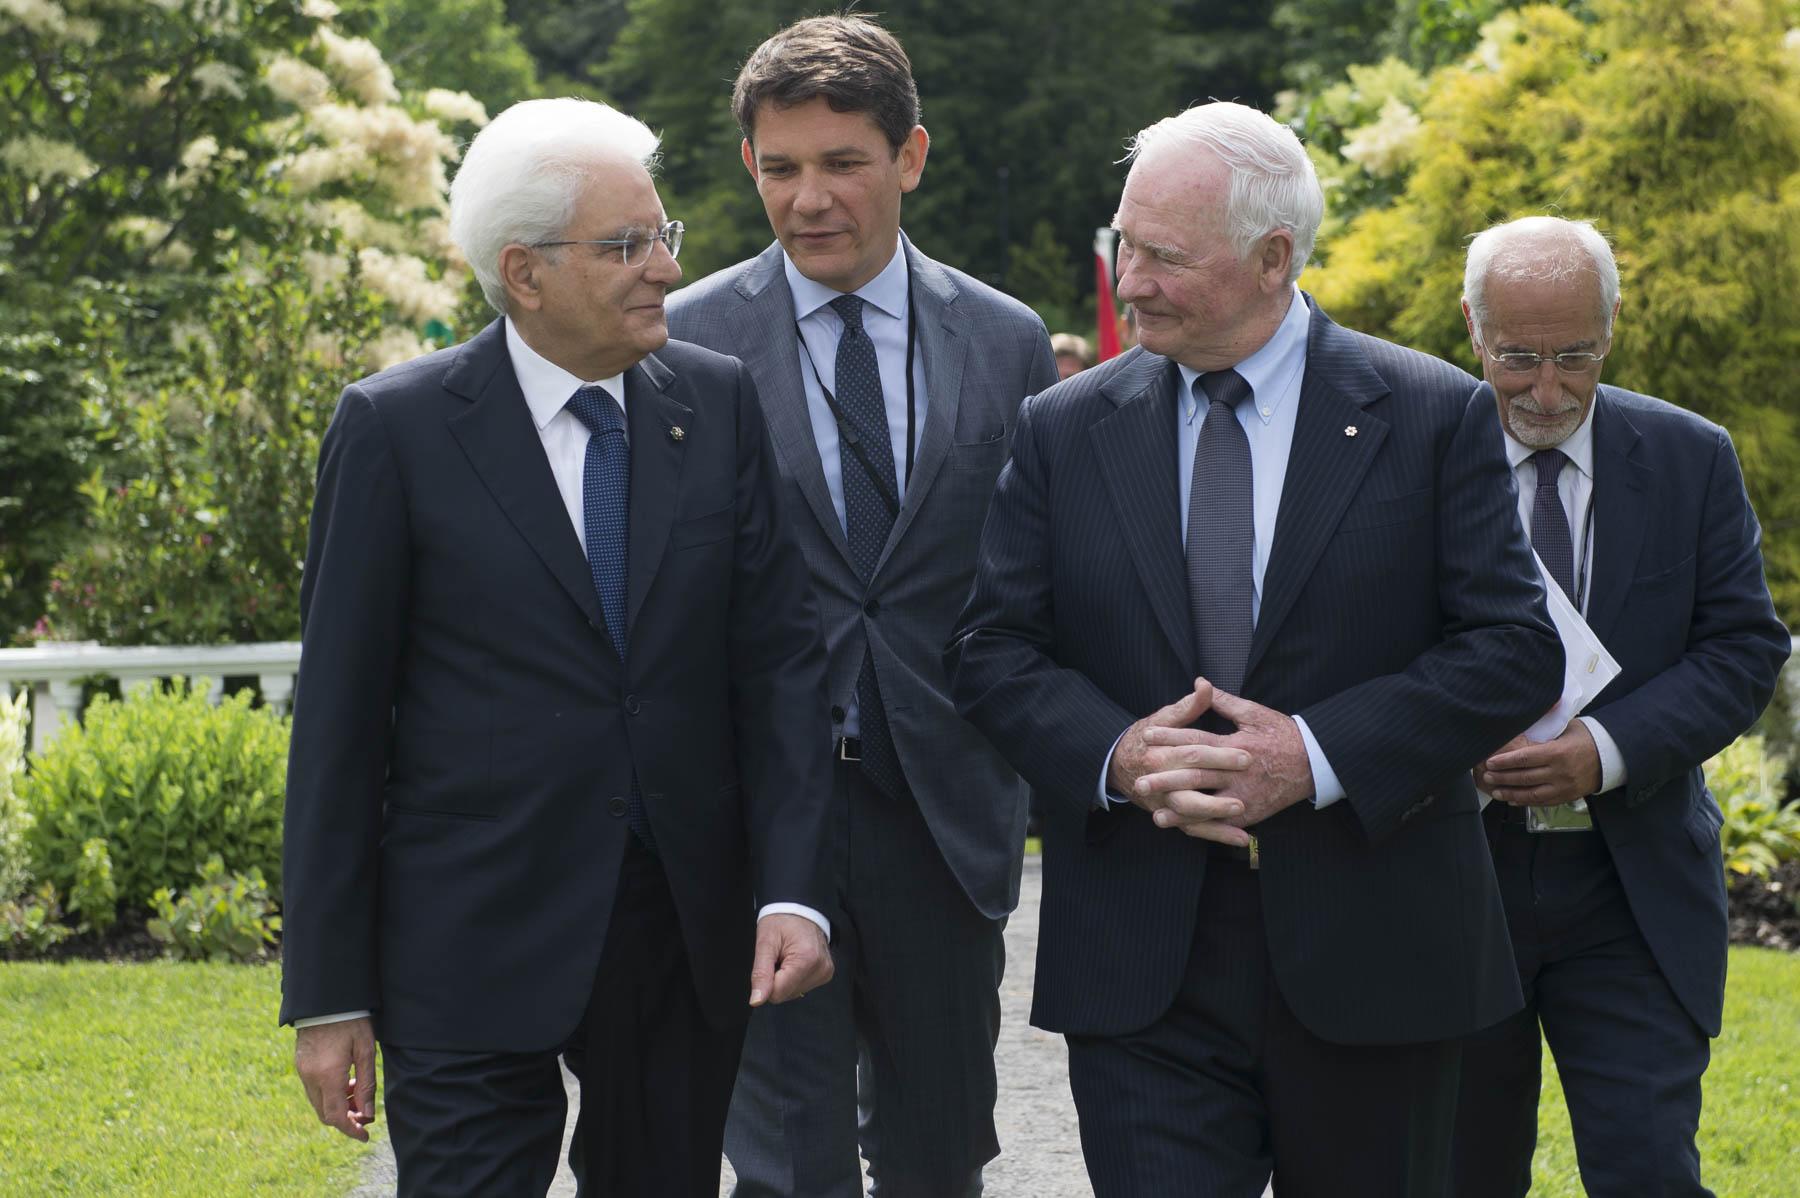 The Governor General and the President enjoying a walk in the gardens as they make their way to the residence.